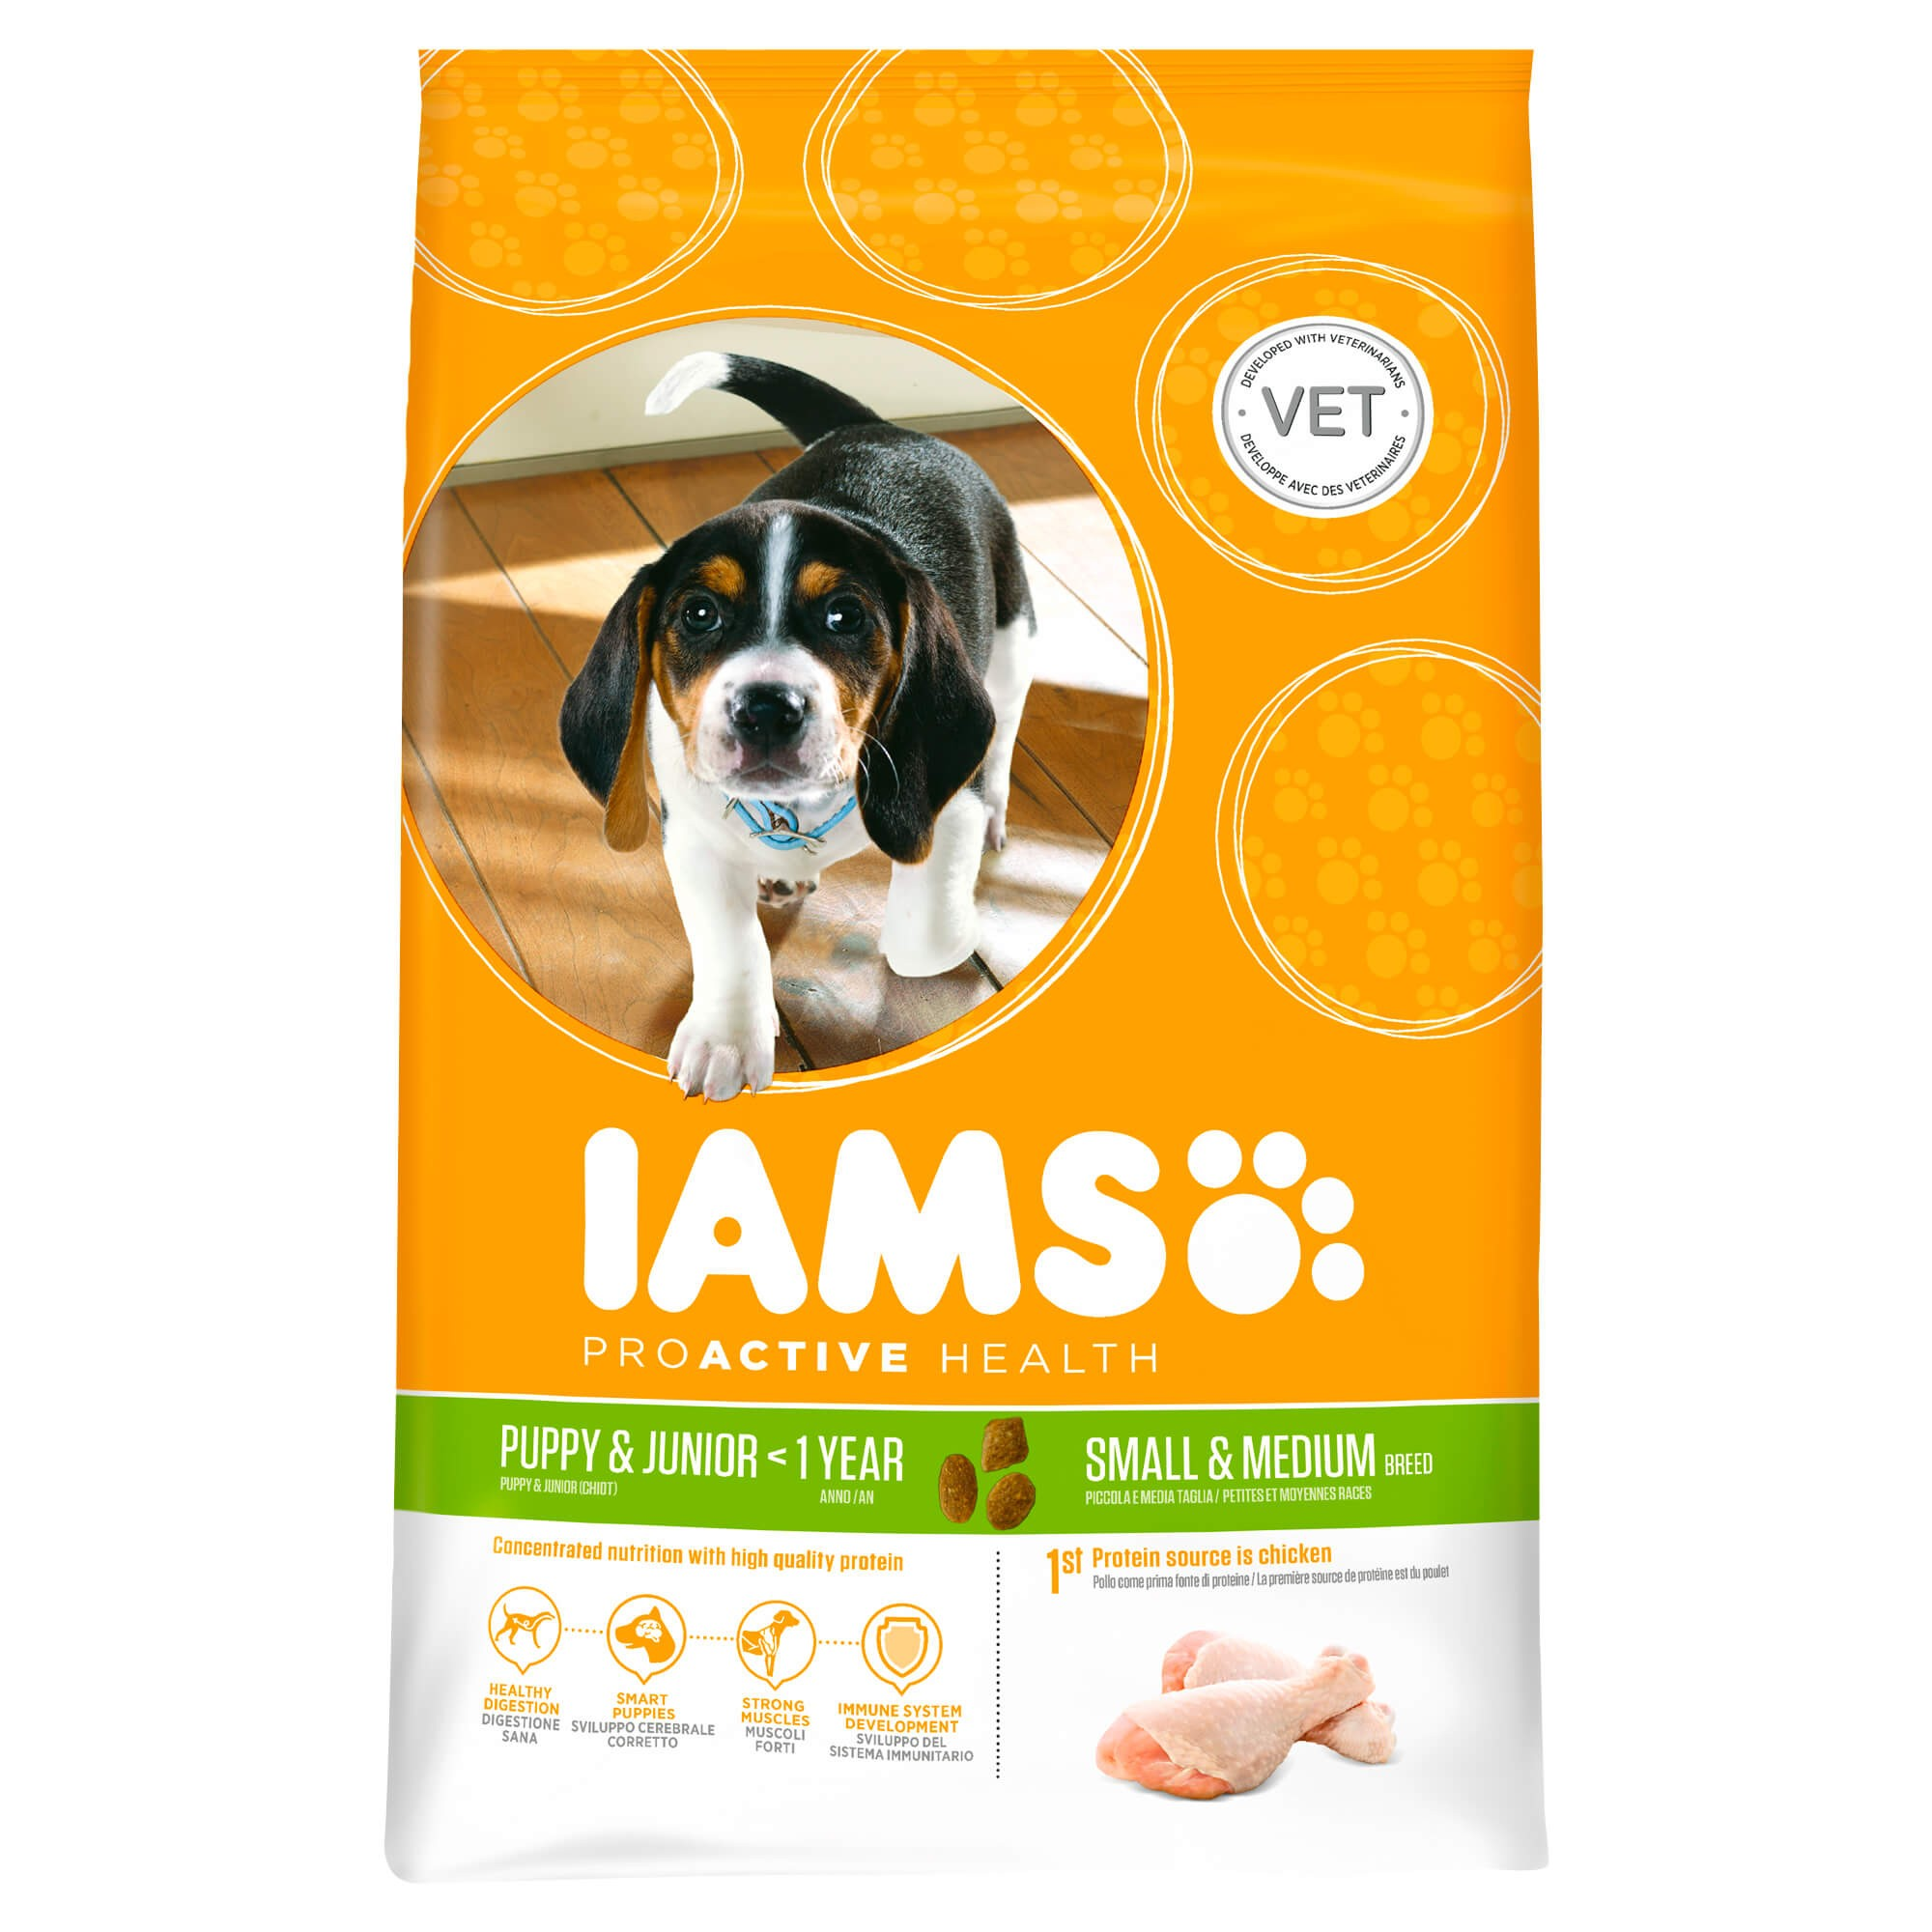 Iams Chiot Puppy & Junior Small & Medium Breed